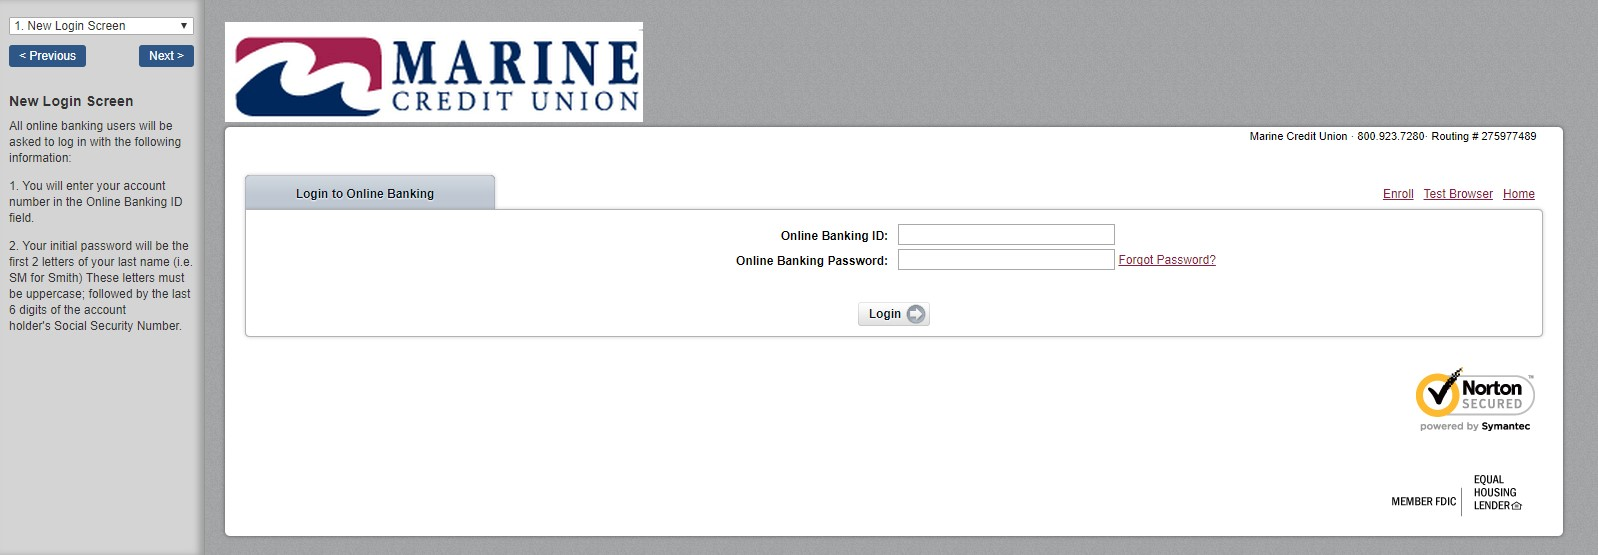 marine credit union  Login Screen